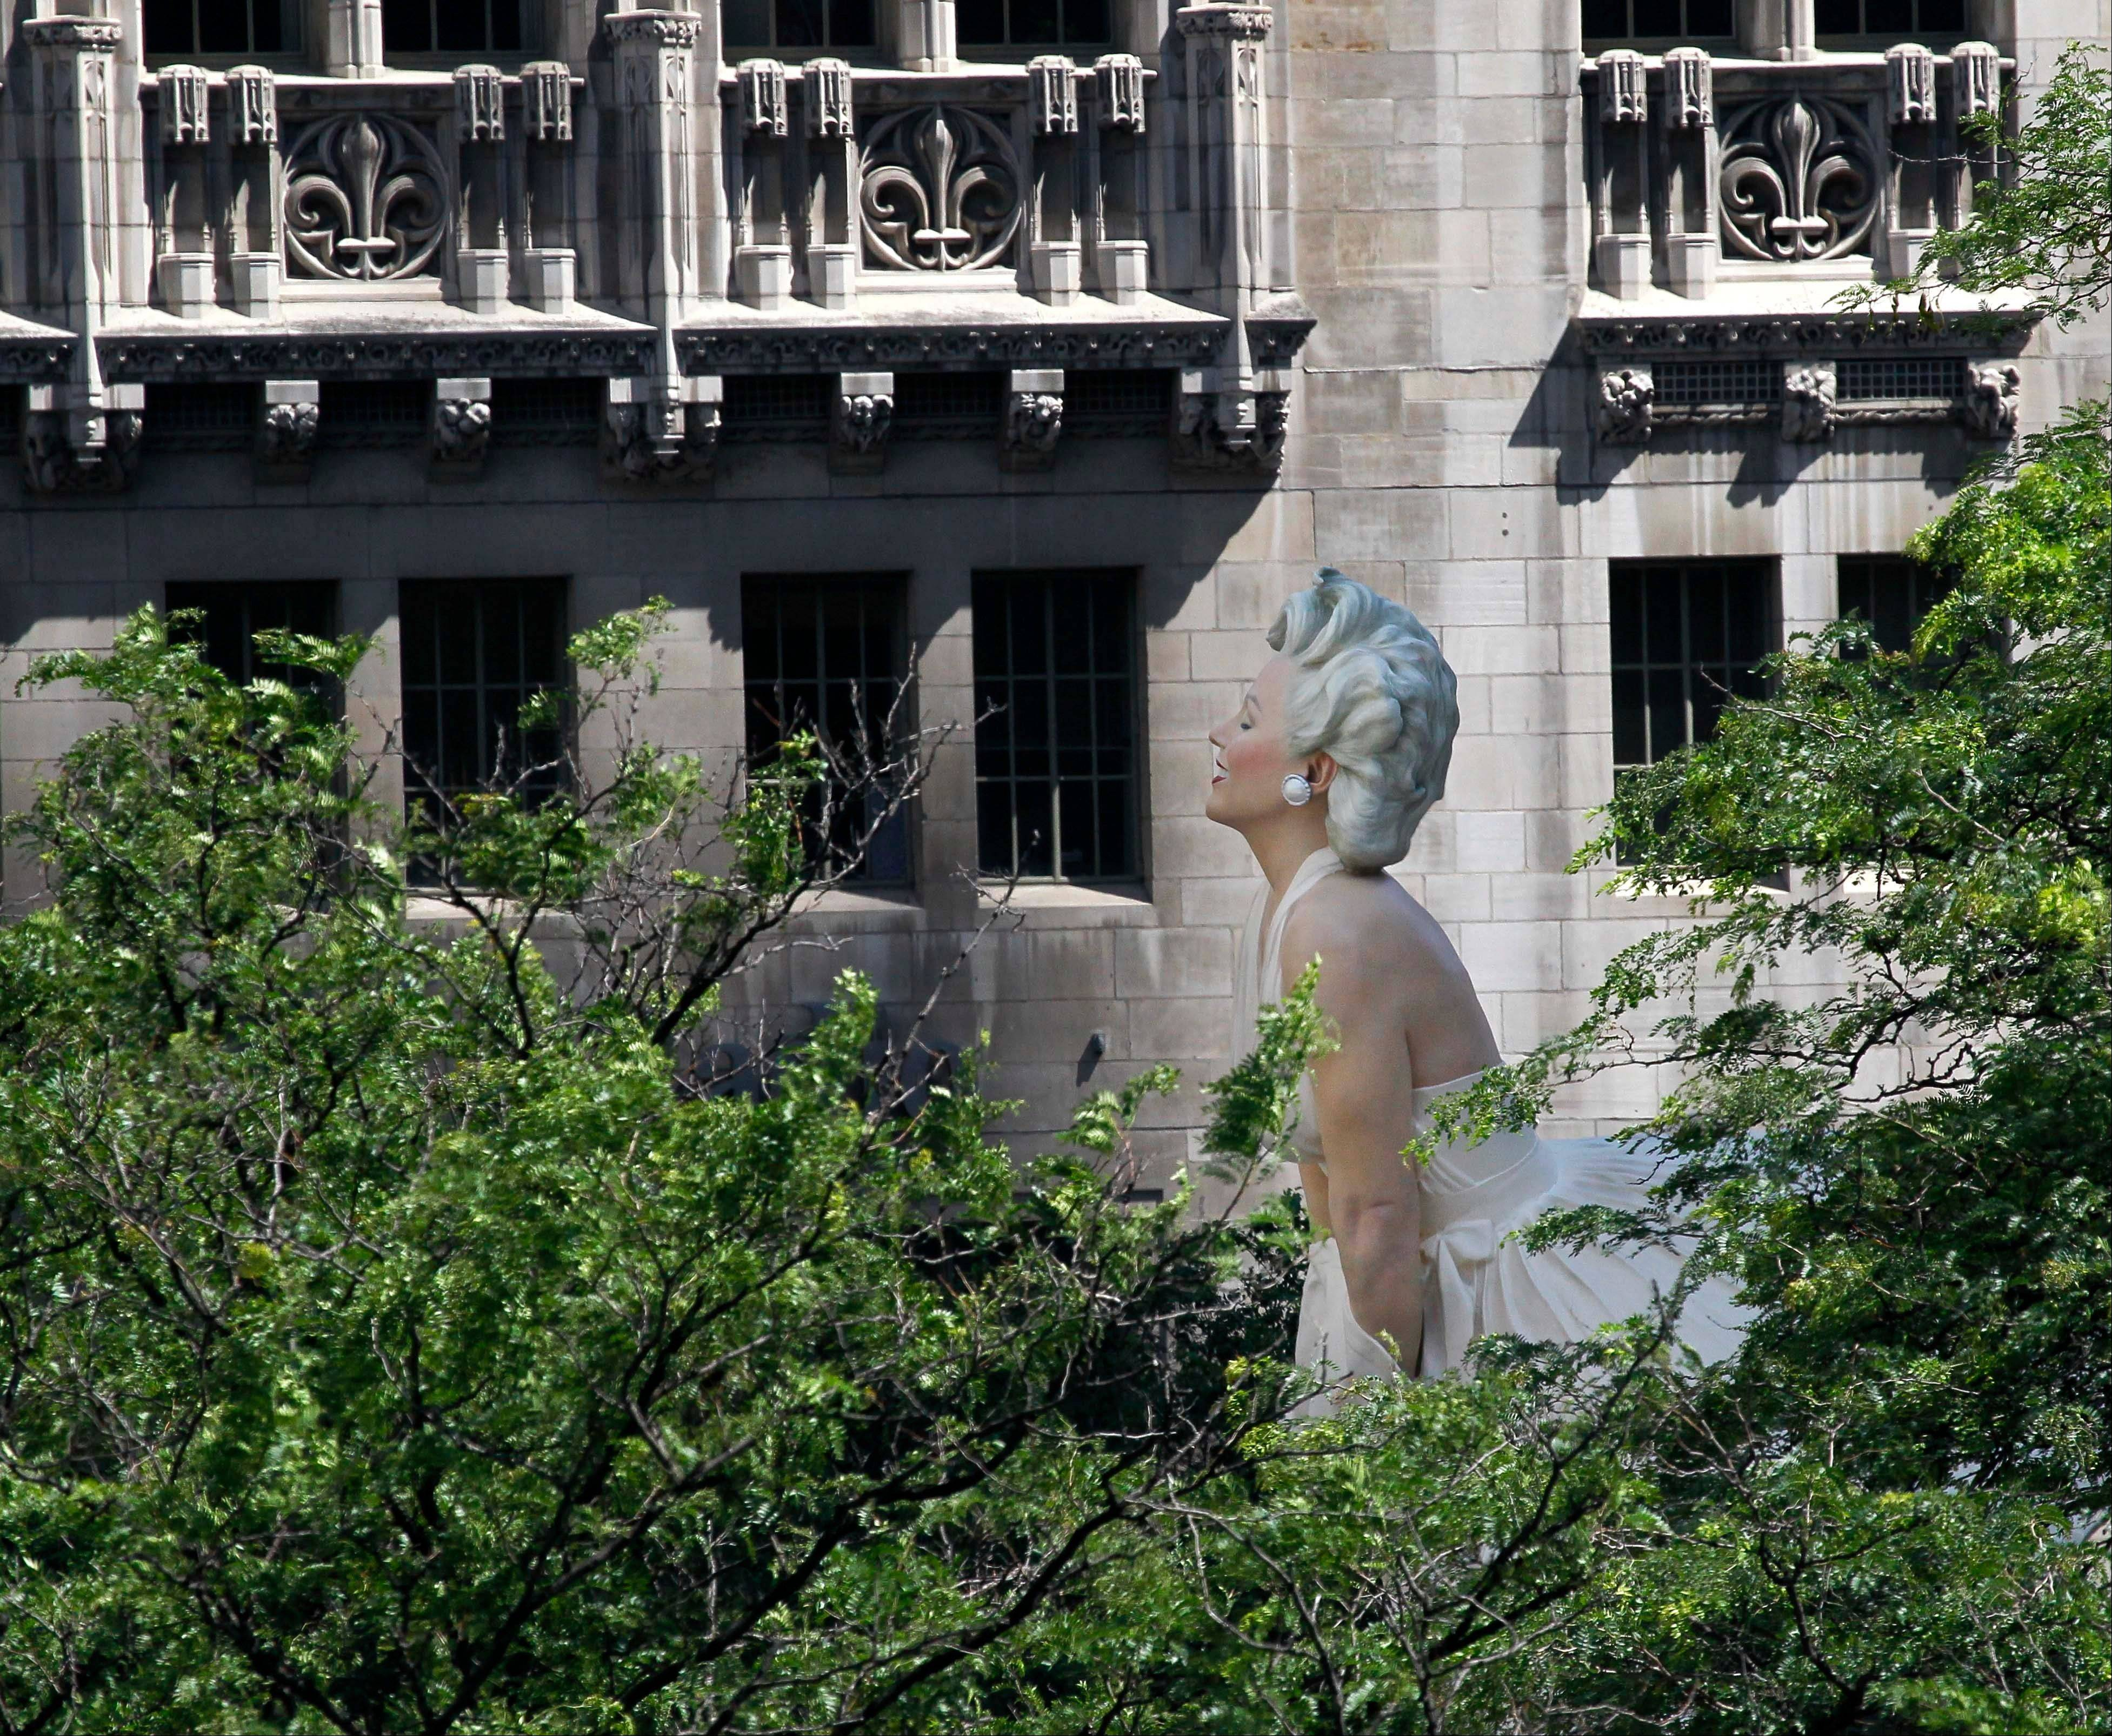 Seward Johnson's 26-foot-tall sculpture of Marilyn Monroe, in her most famous windblown pose, is seen across the Chicago River through trees on Michigan Ave. in Chicago.